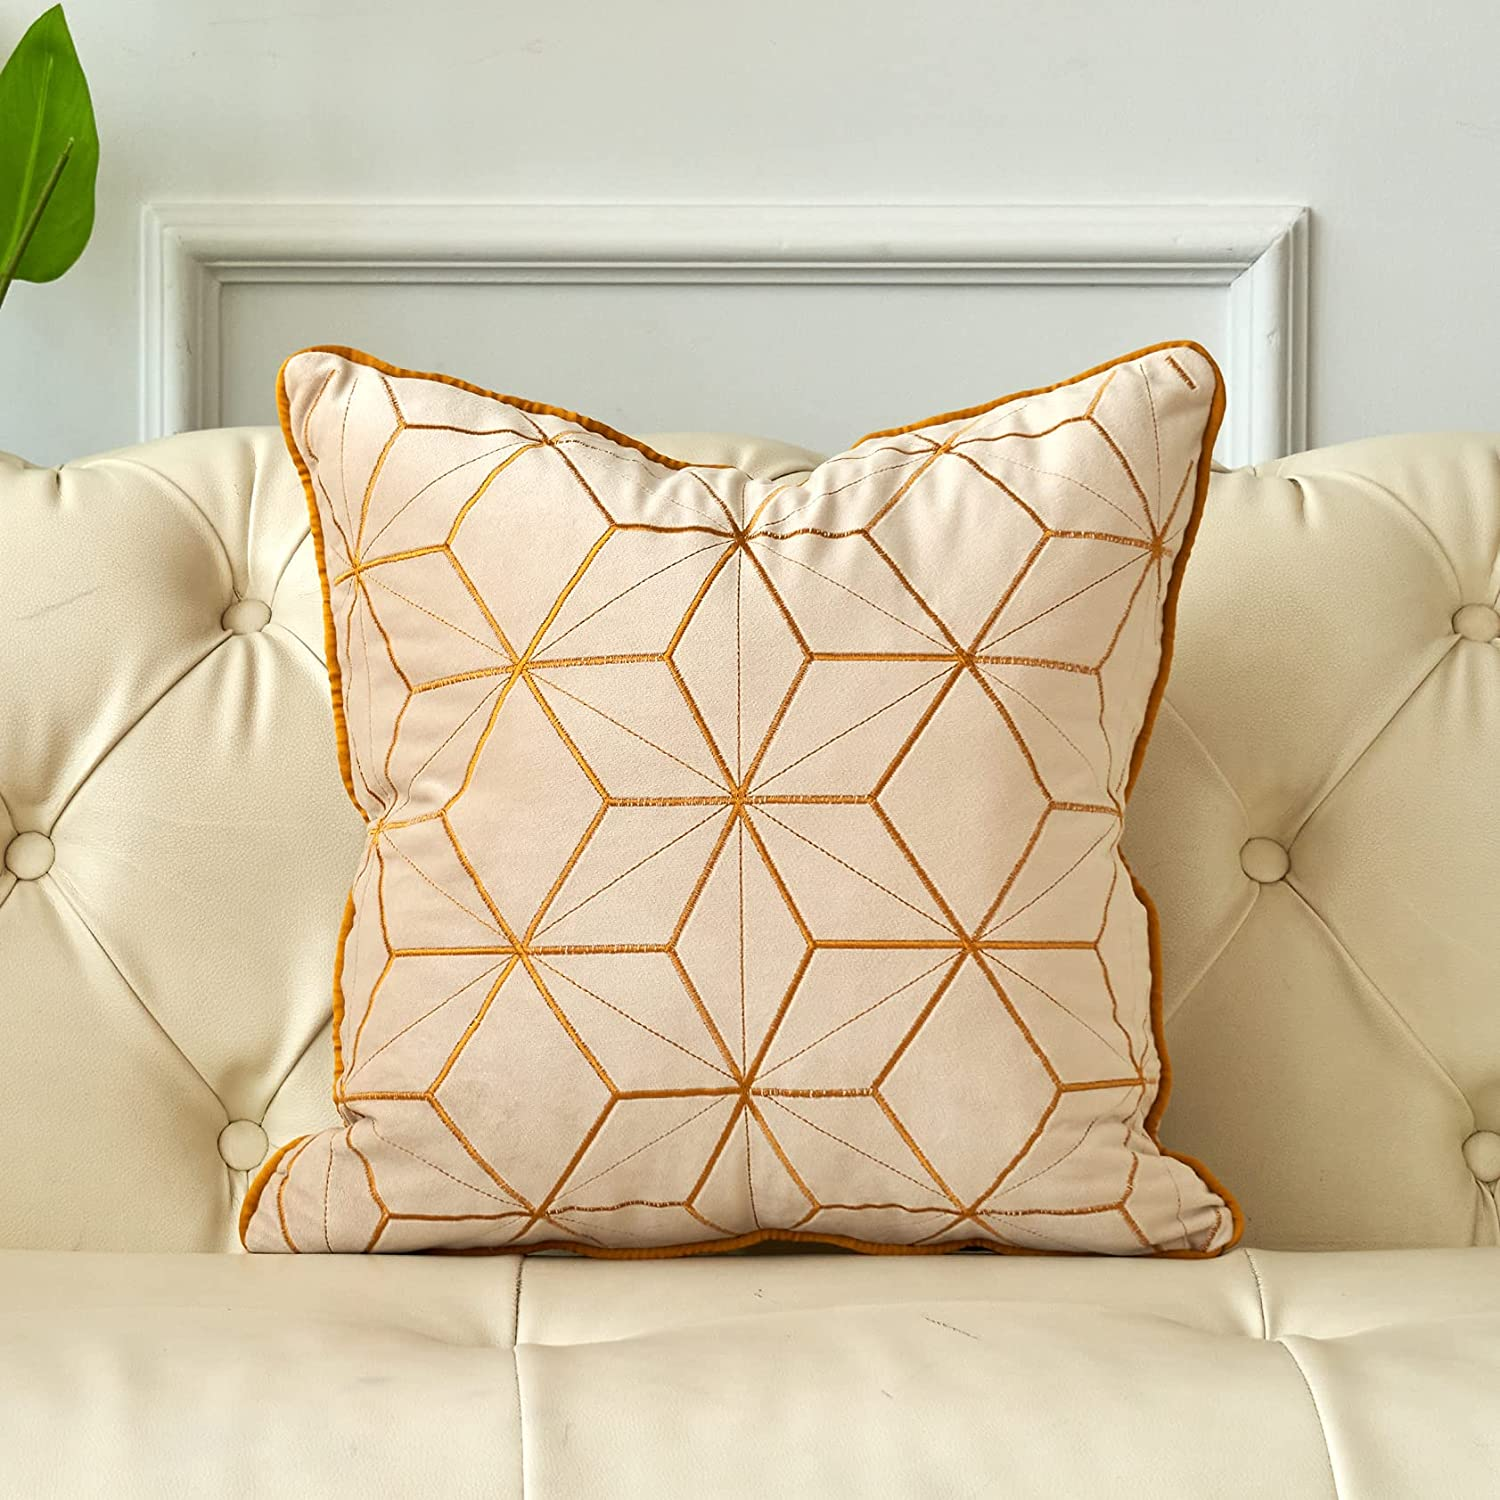 FOOCHY White Columbus Mall Velvet Throw Pillow Pla Embroidery 16x16 Selling Inch Cover